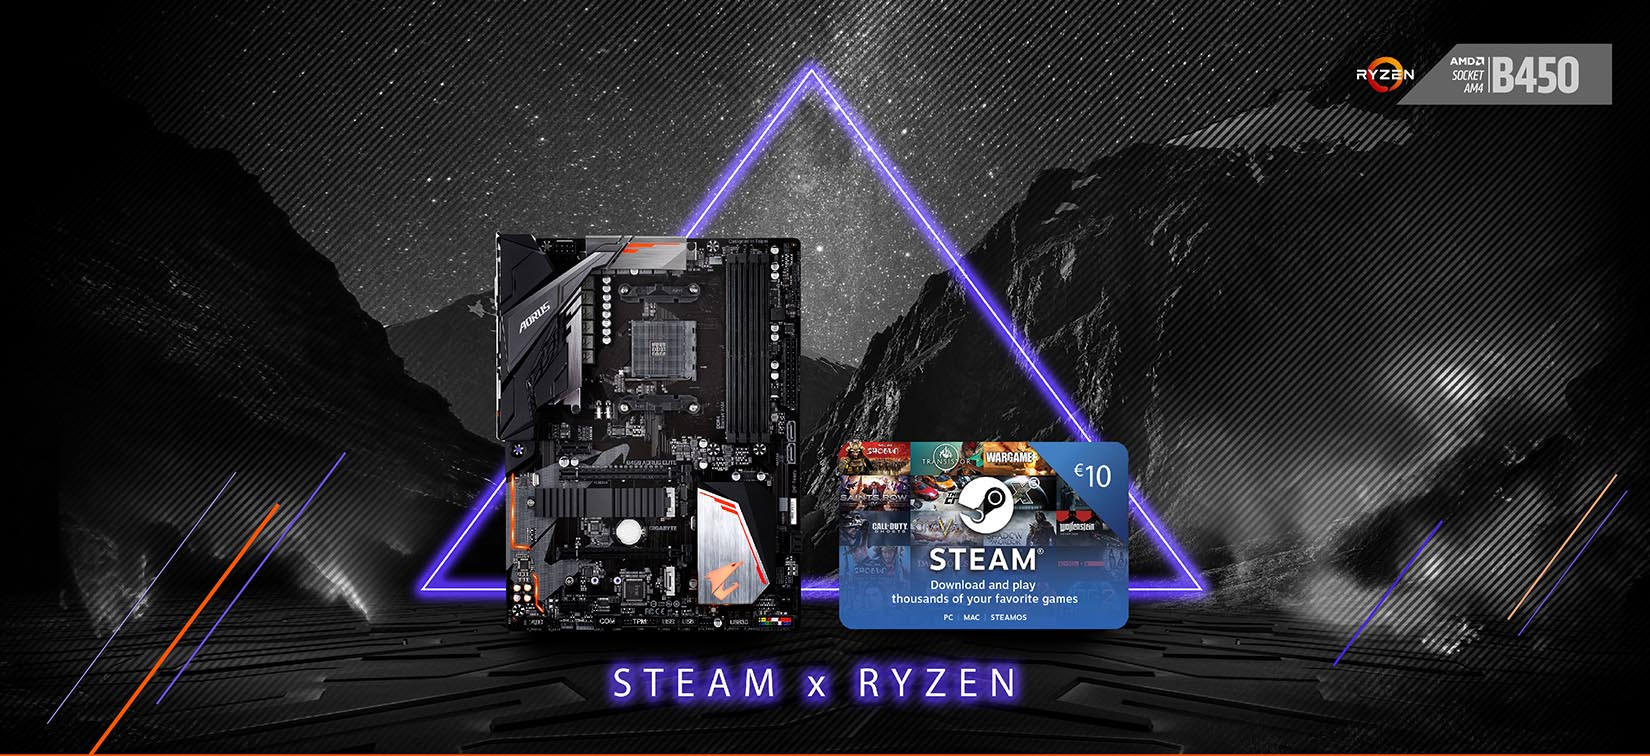 Starting from the 1st of February and finishing on the 31st March 2019, GIGABYTE will gift customers STEAM wallet codes when they buy select GIGABYTE AM4 ...